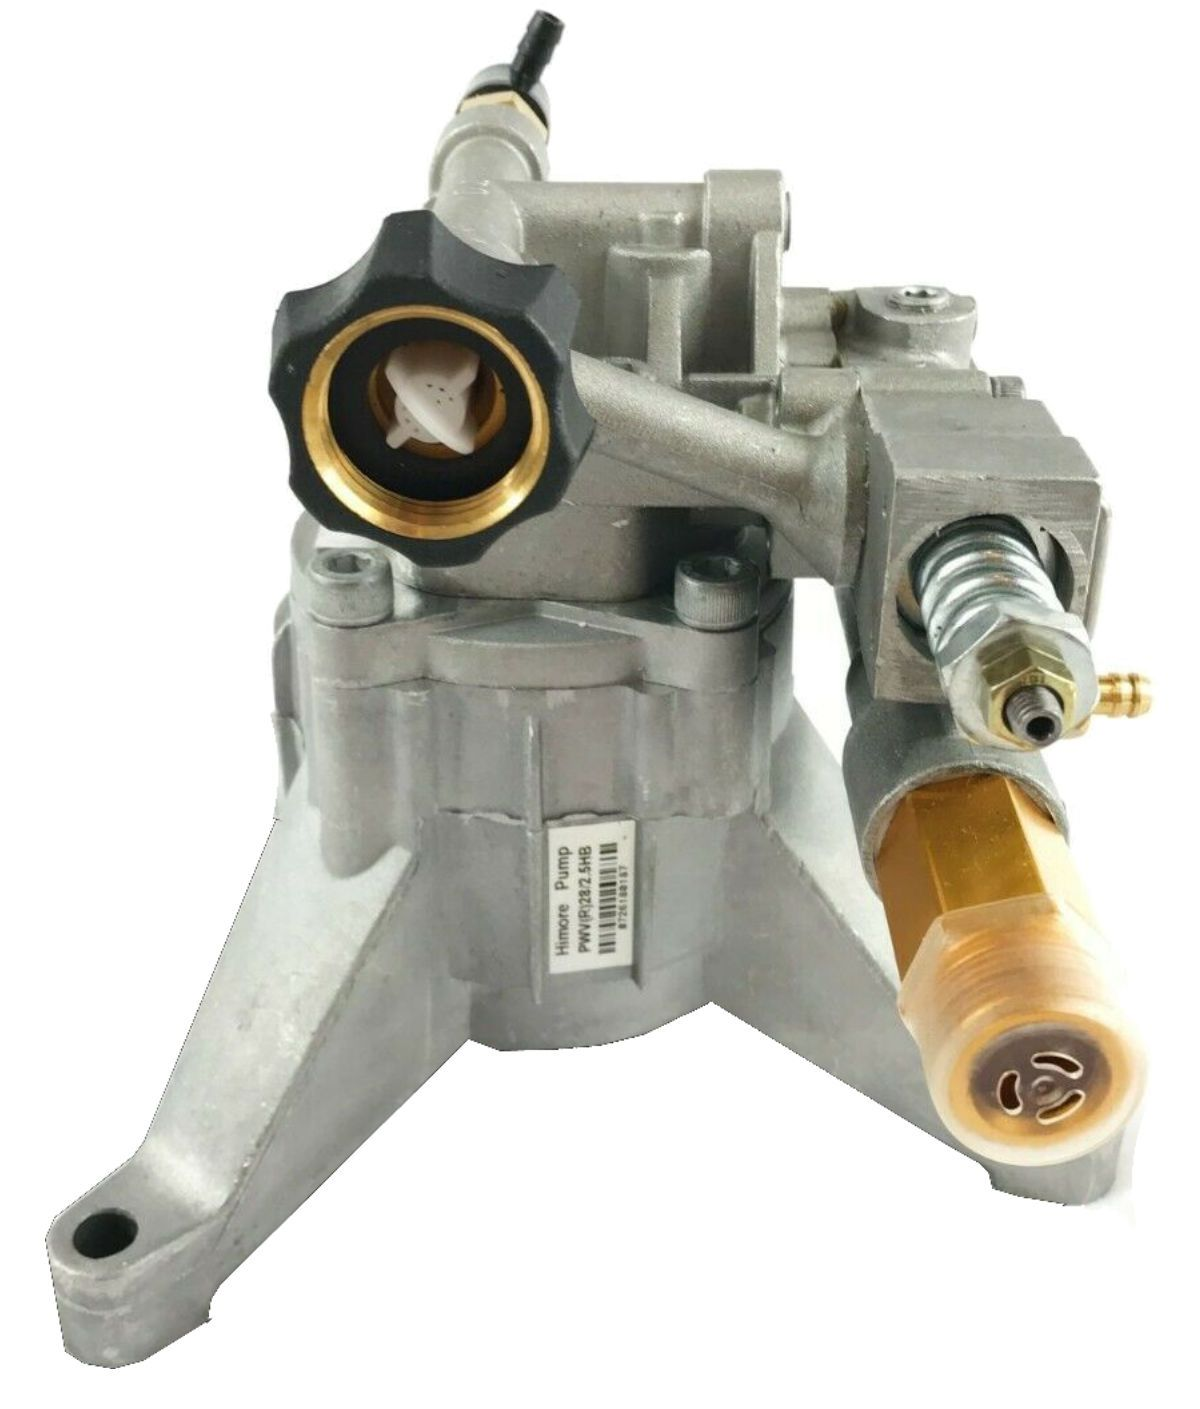 2700 PSI PRESSURE WASHER WATER PUMP Briggs & Stratton 020370-0 580.752280 - AE-Power